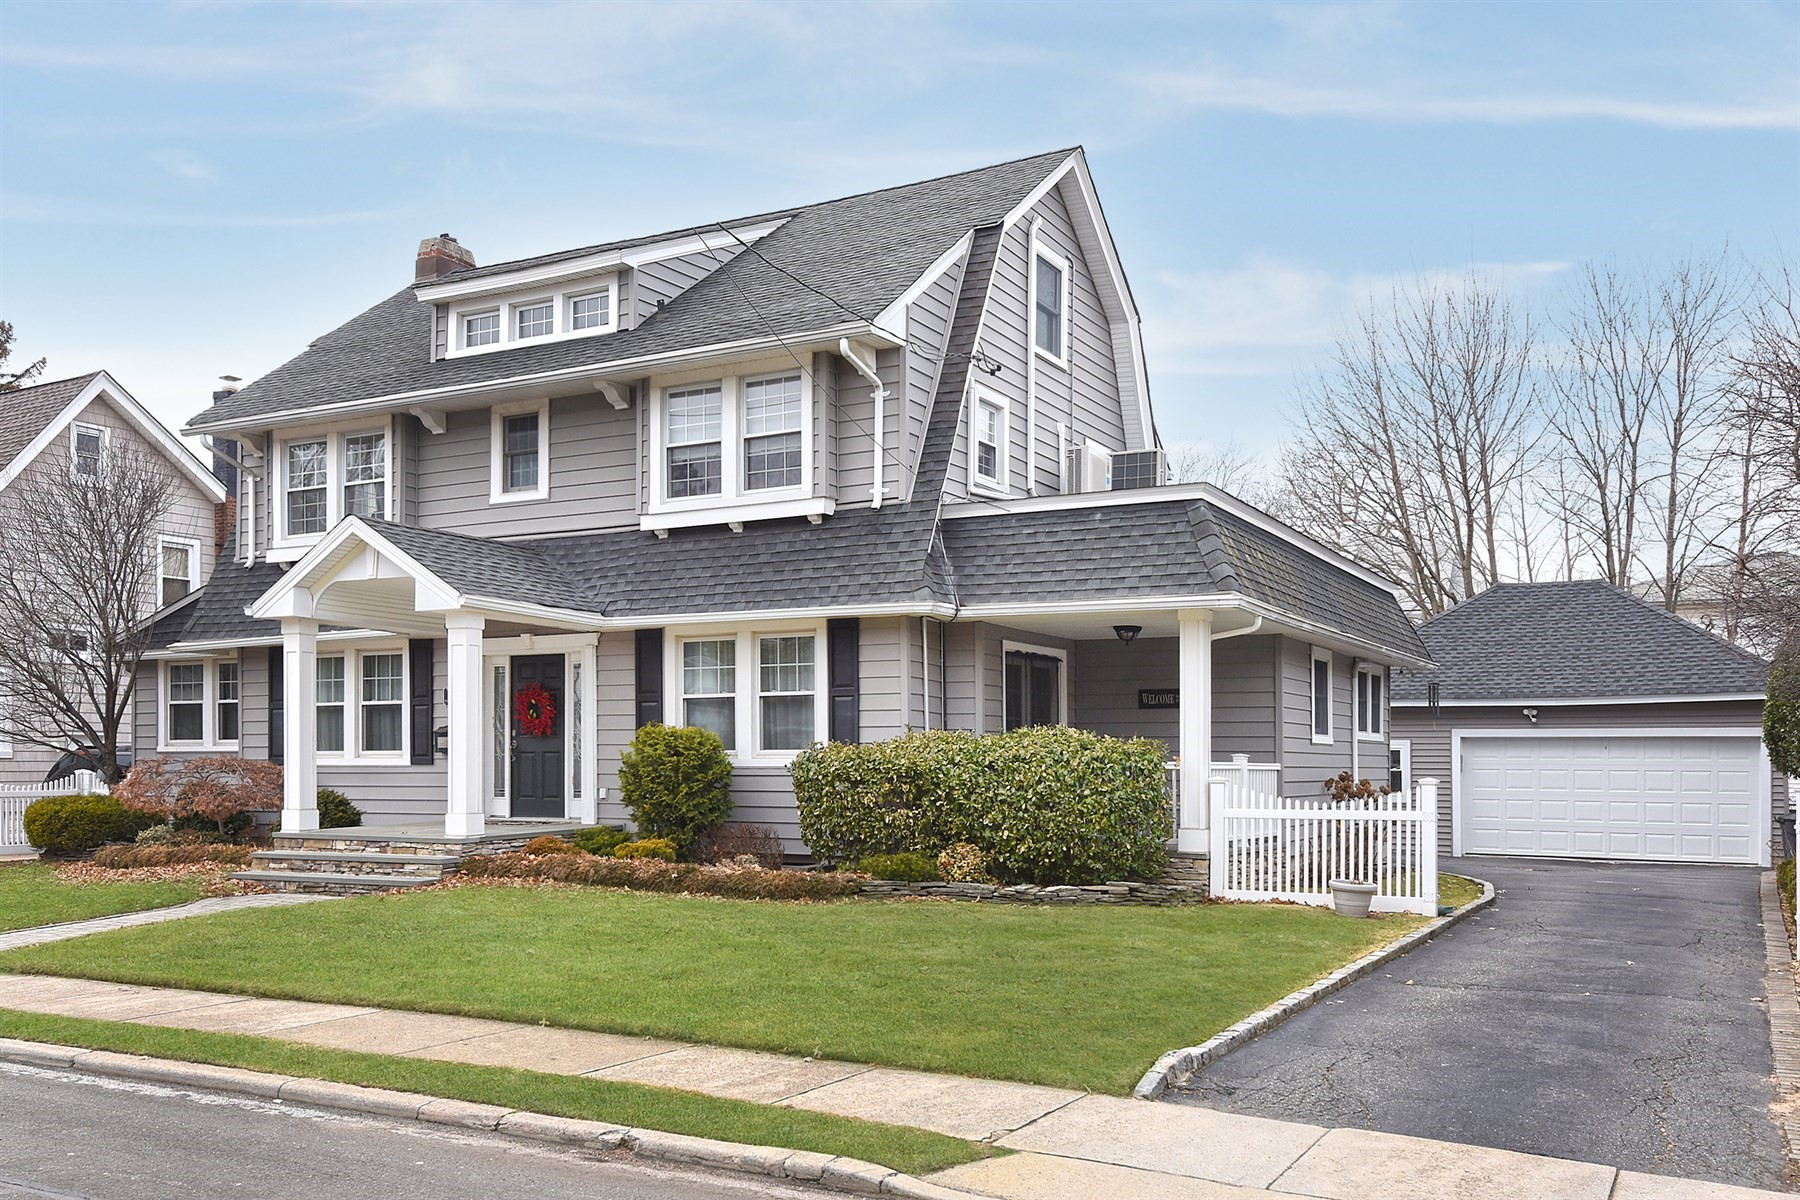 Single Family Home for Sale at 51 Watts Pl , Lynbrook, NY 11563 51 Watts Pl, Lynbrook, New York, 11563 United States